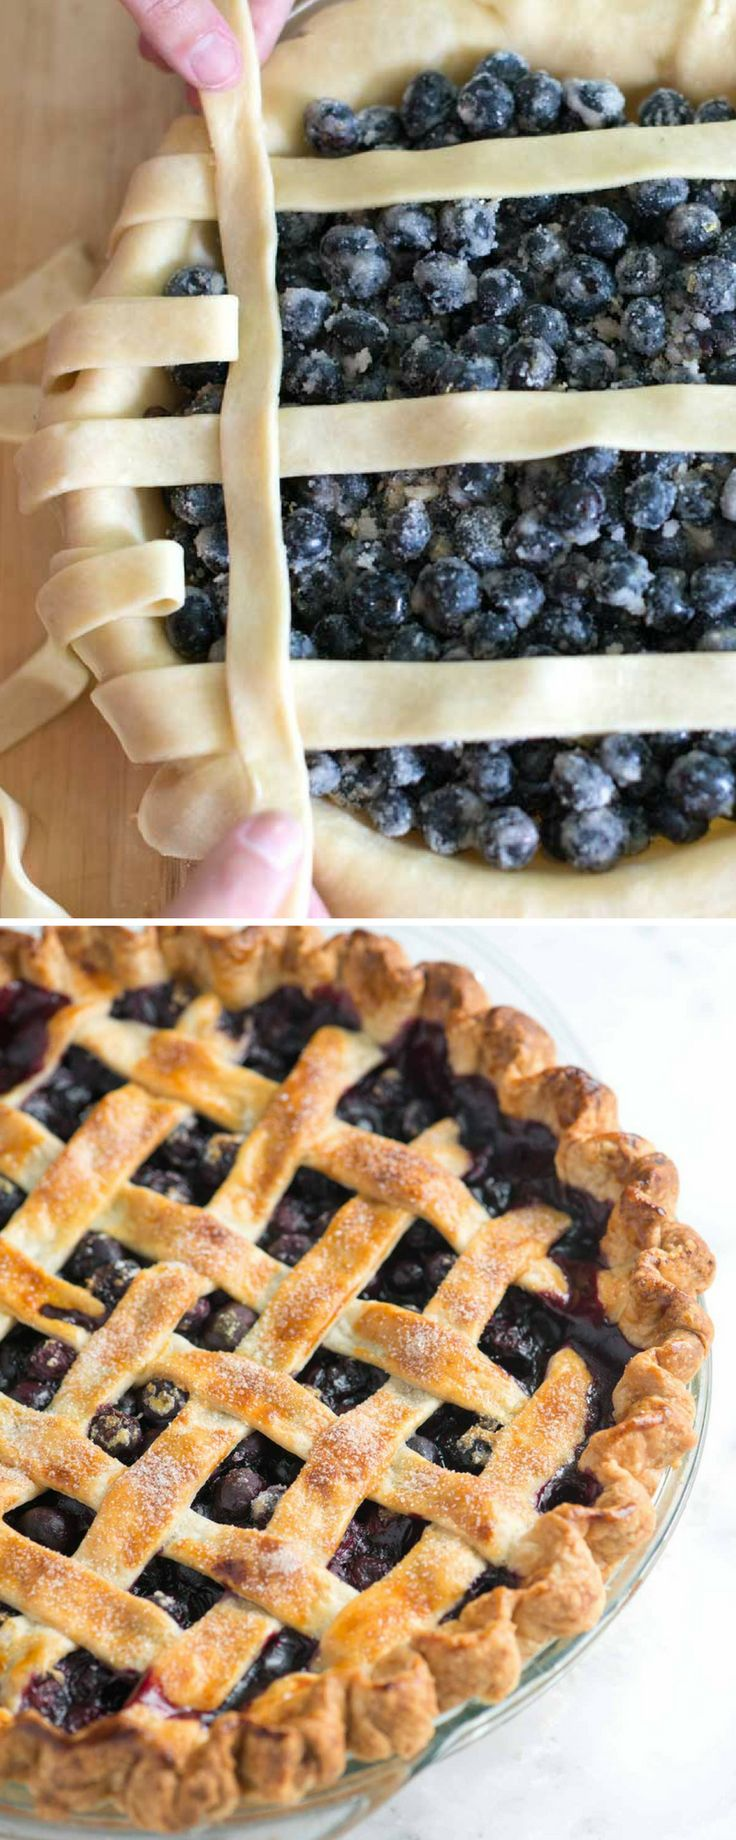 This is my favorite homemade blueberry pie recipe! It's made completely from scratch, but it's still so simple. (Plus, there's a tutorial for how to make a lattice crust which looks amazing on this pie)